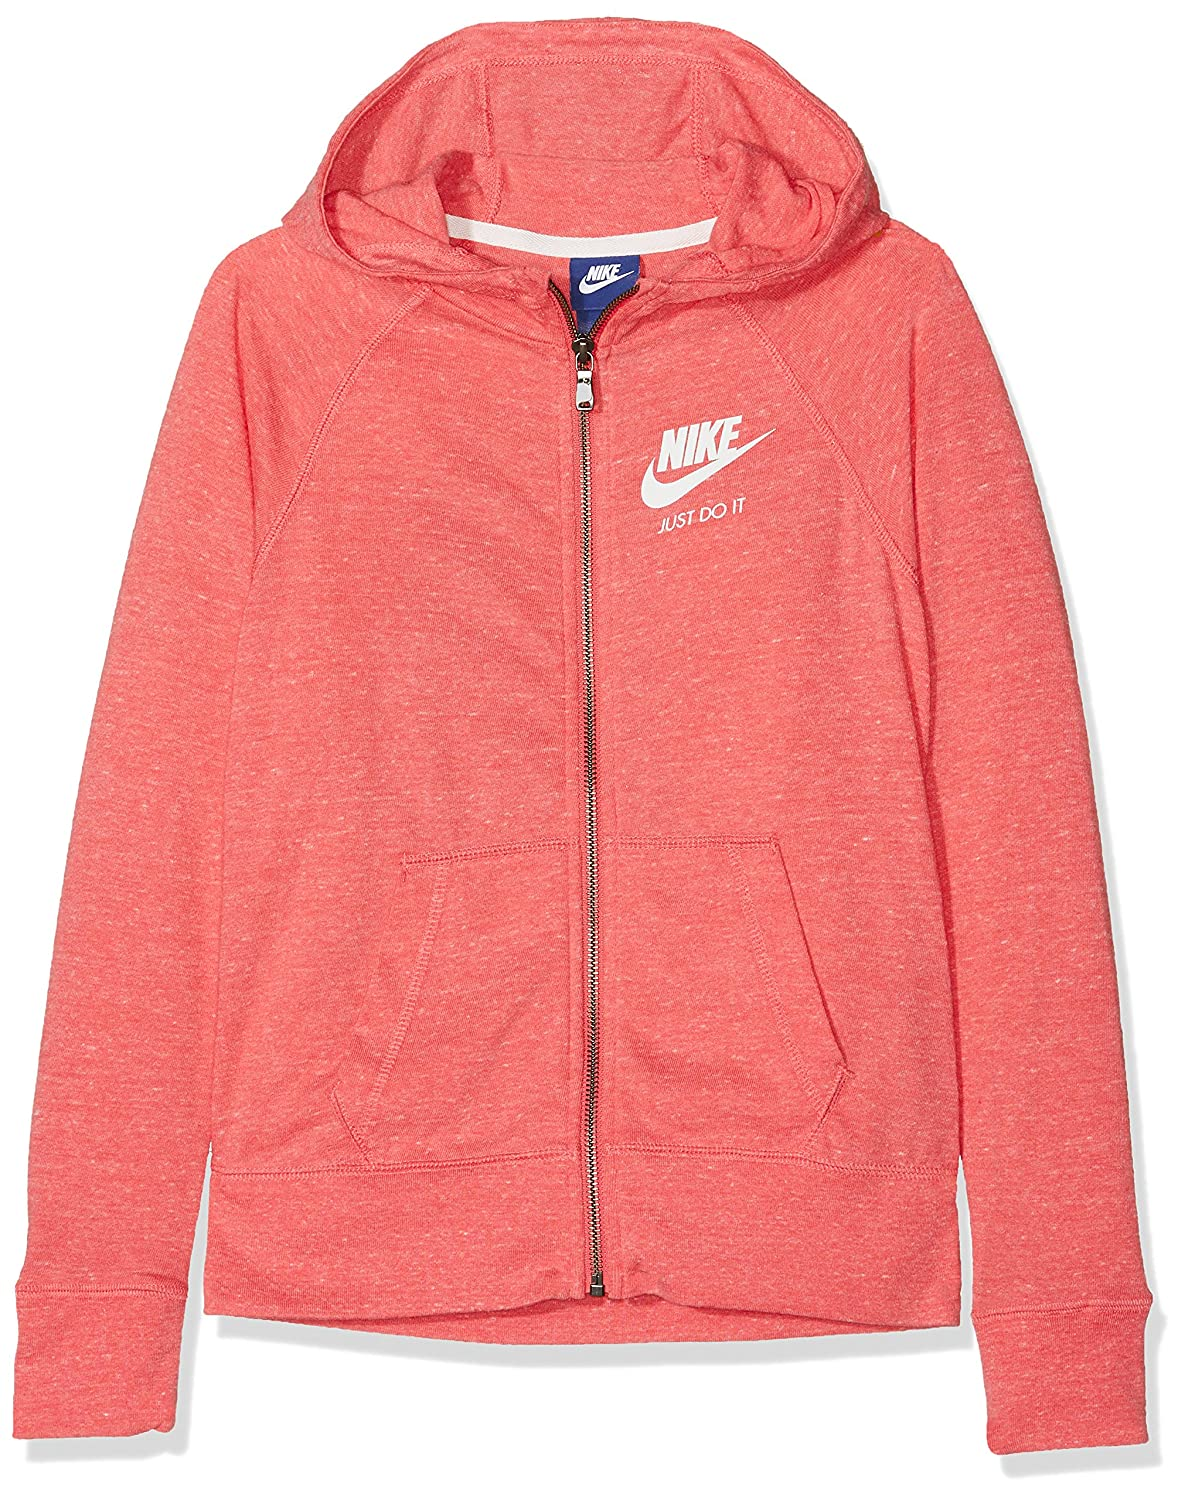 MultiCouleure - Rose (sea coral Sail) S Nike g NSW VNTG sweat à capuche FZ Sweat, Filles